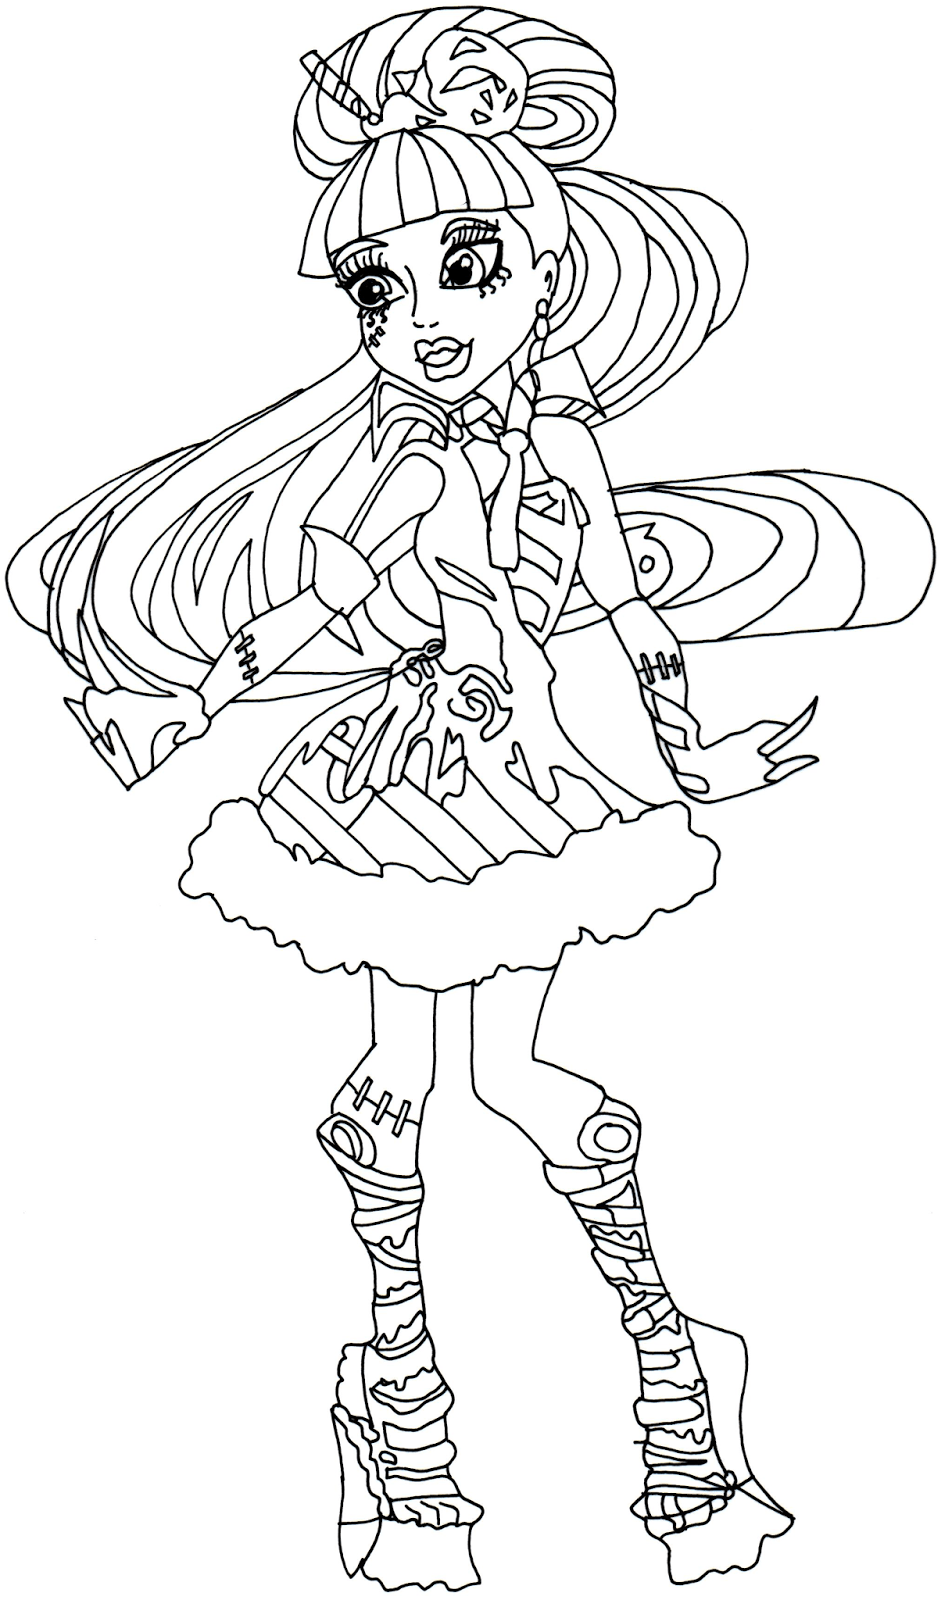 Sweet 1600 coloring pages download and print for free | colouring pages online to print